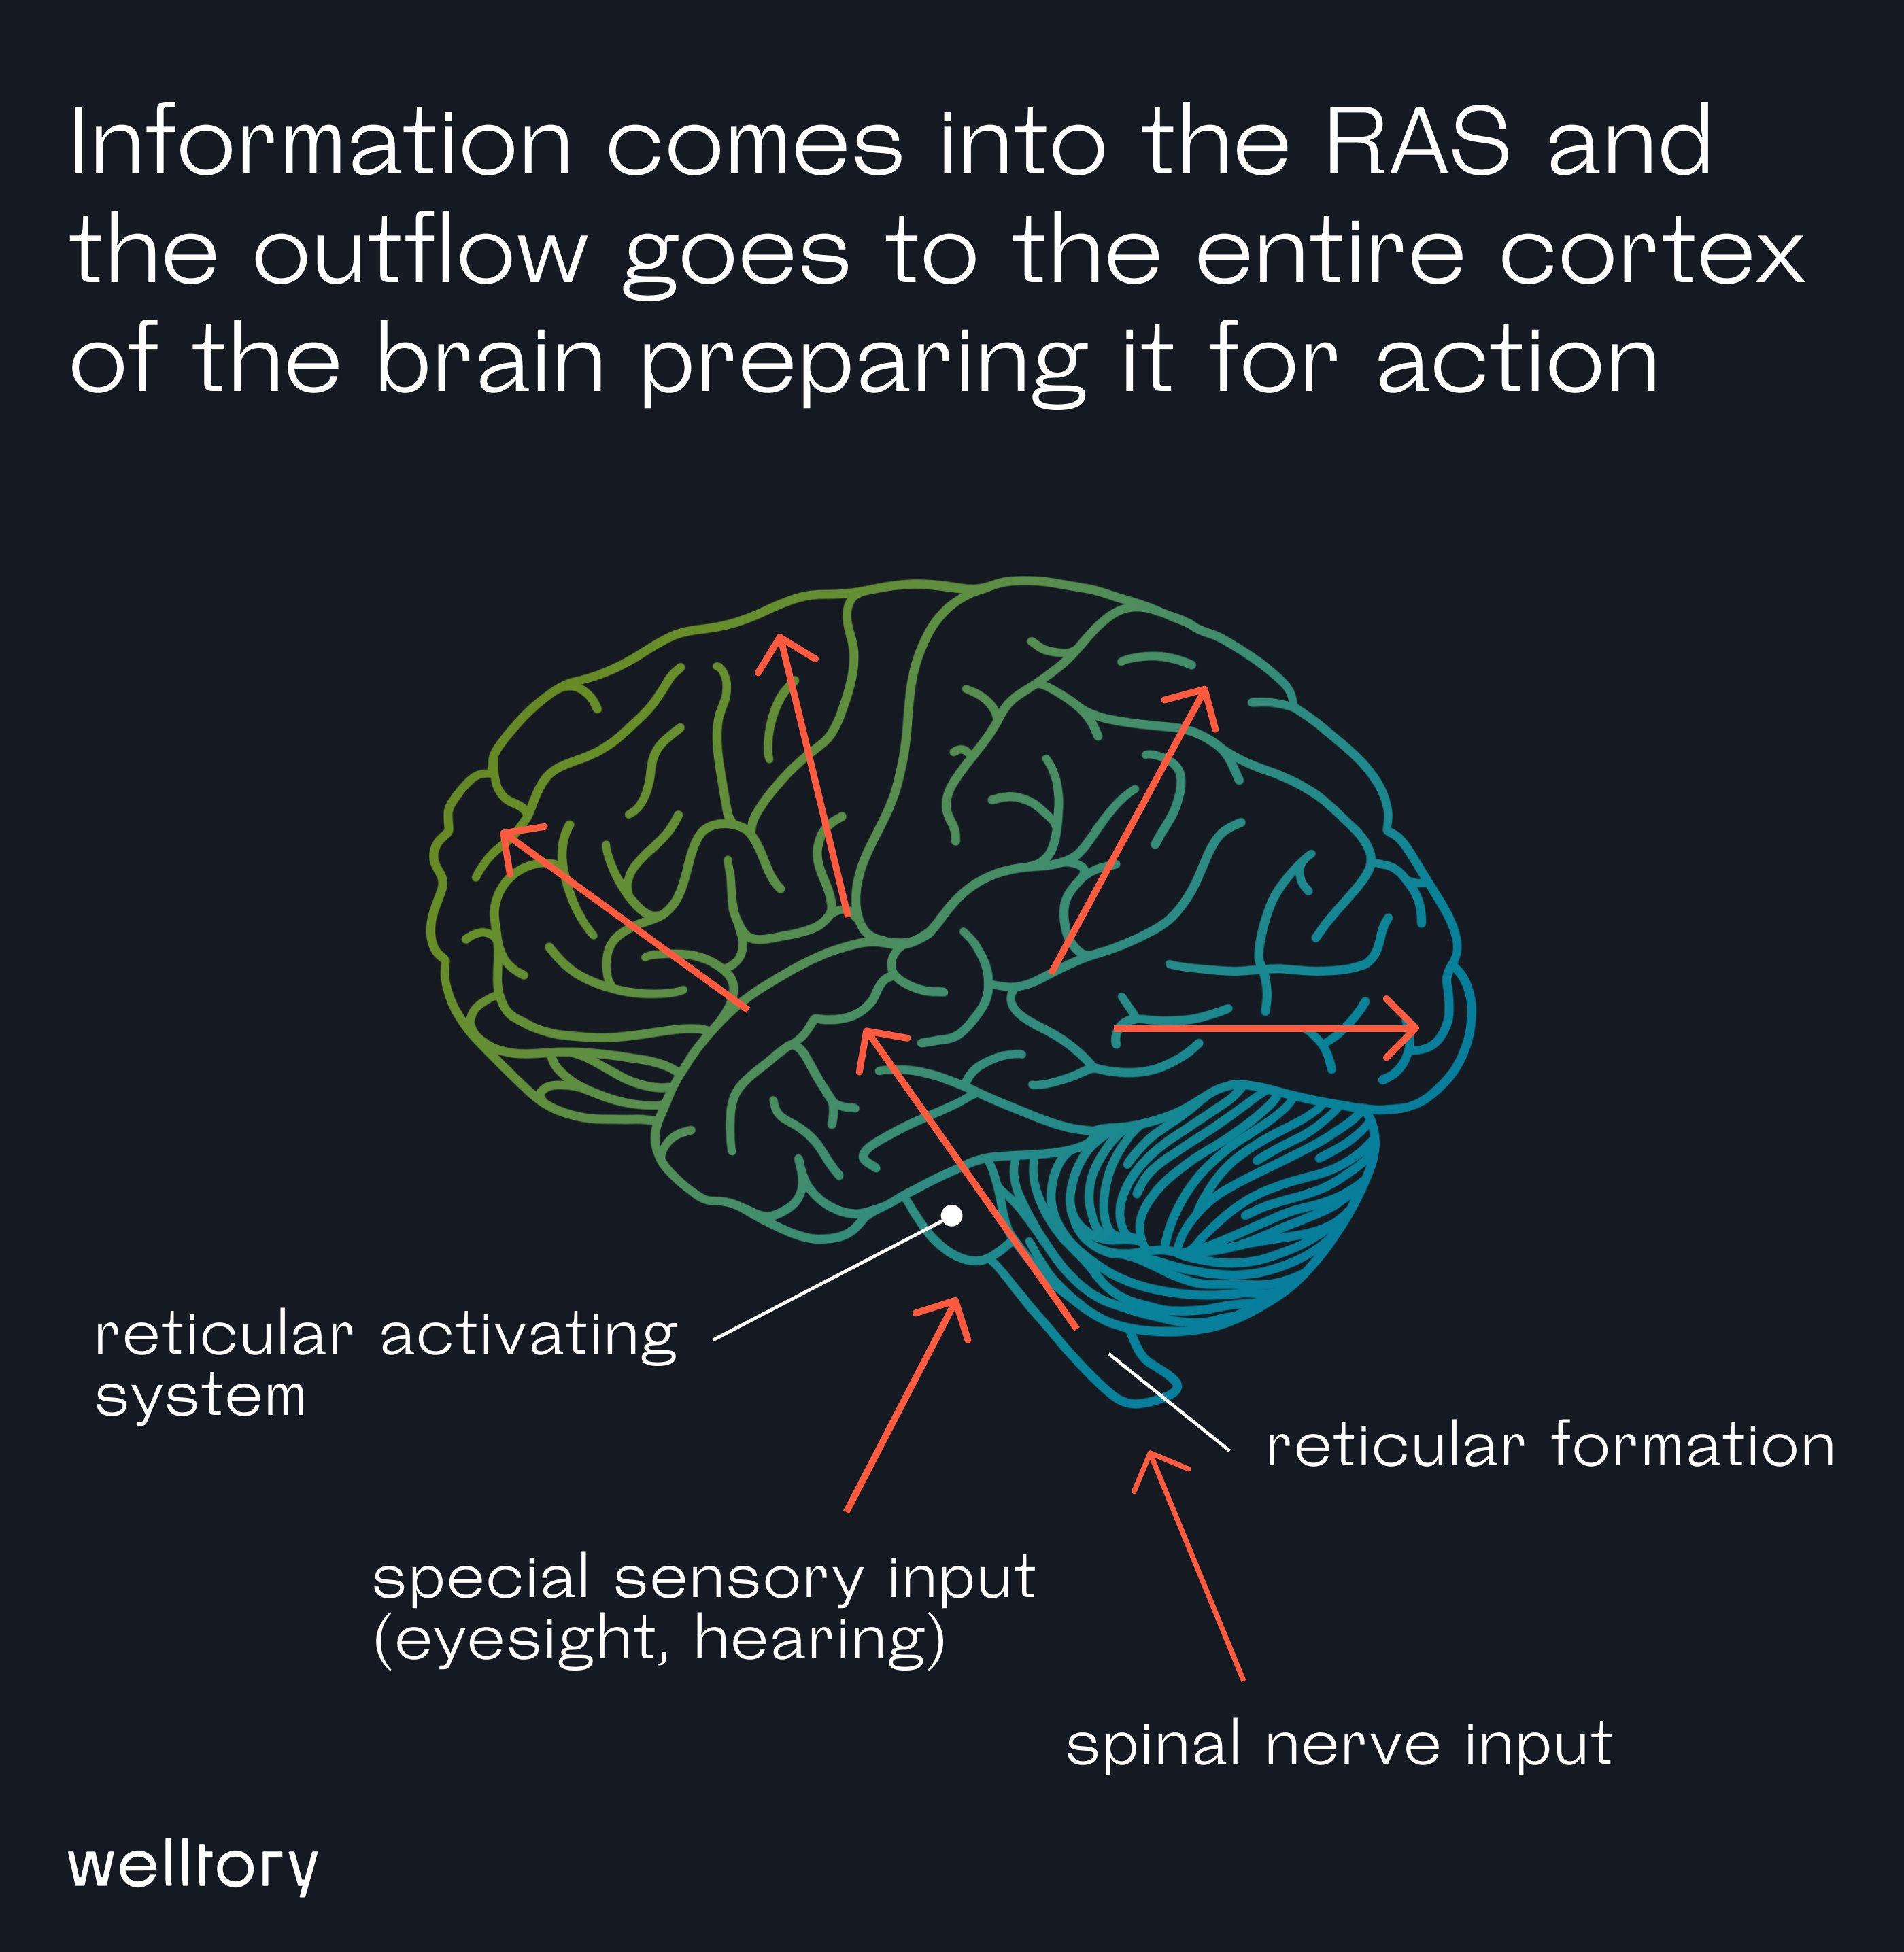 Information comes into the RAS and the outflow goes to the entire cortex of the brain preparing it for action